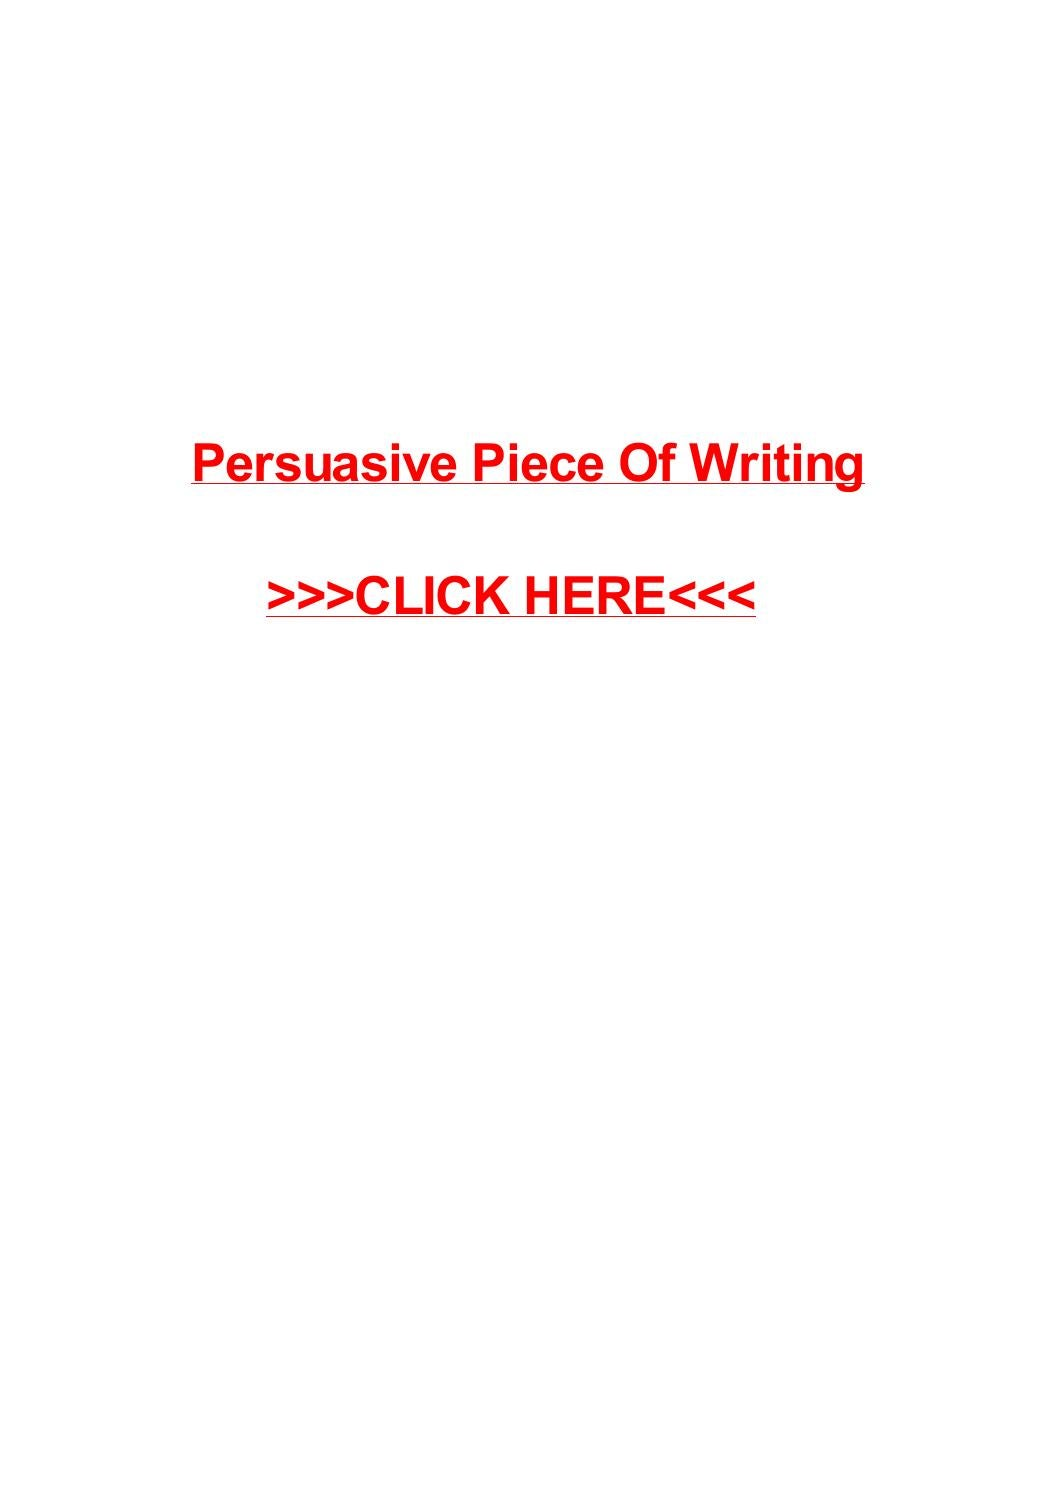 persuasive writing pieces Naplan persuasive text sample work sheets – primary  • organising the writing using persuasive text structure (introduction, body, conclusion) rather than a .